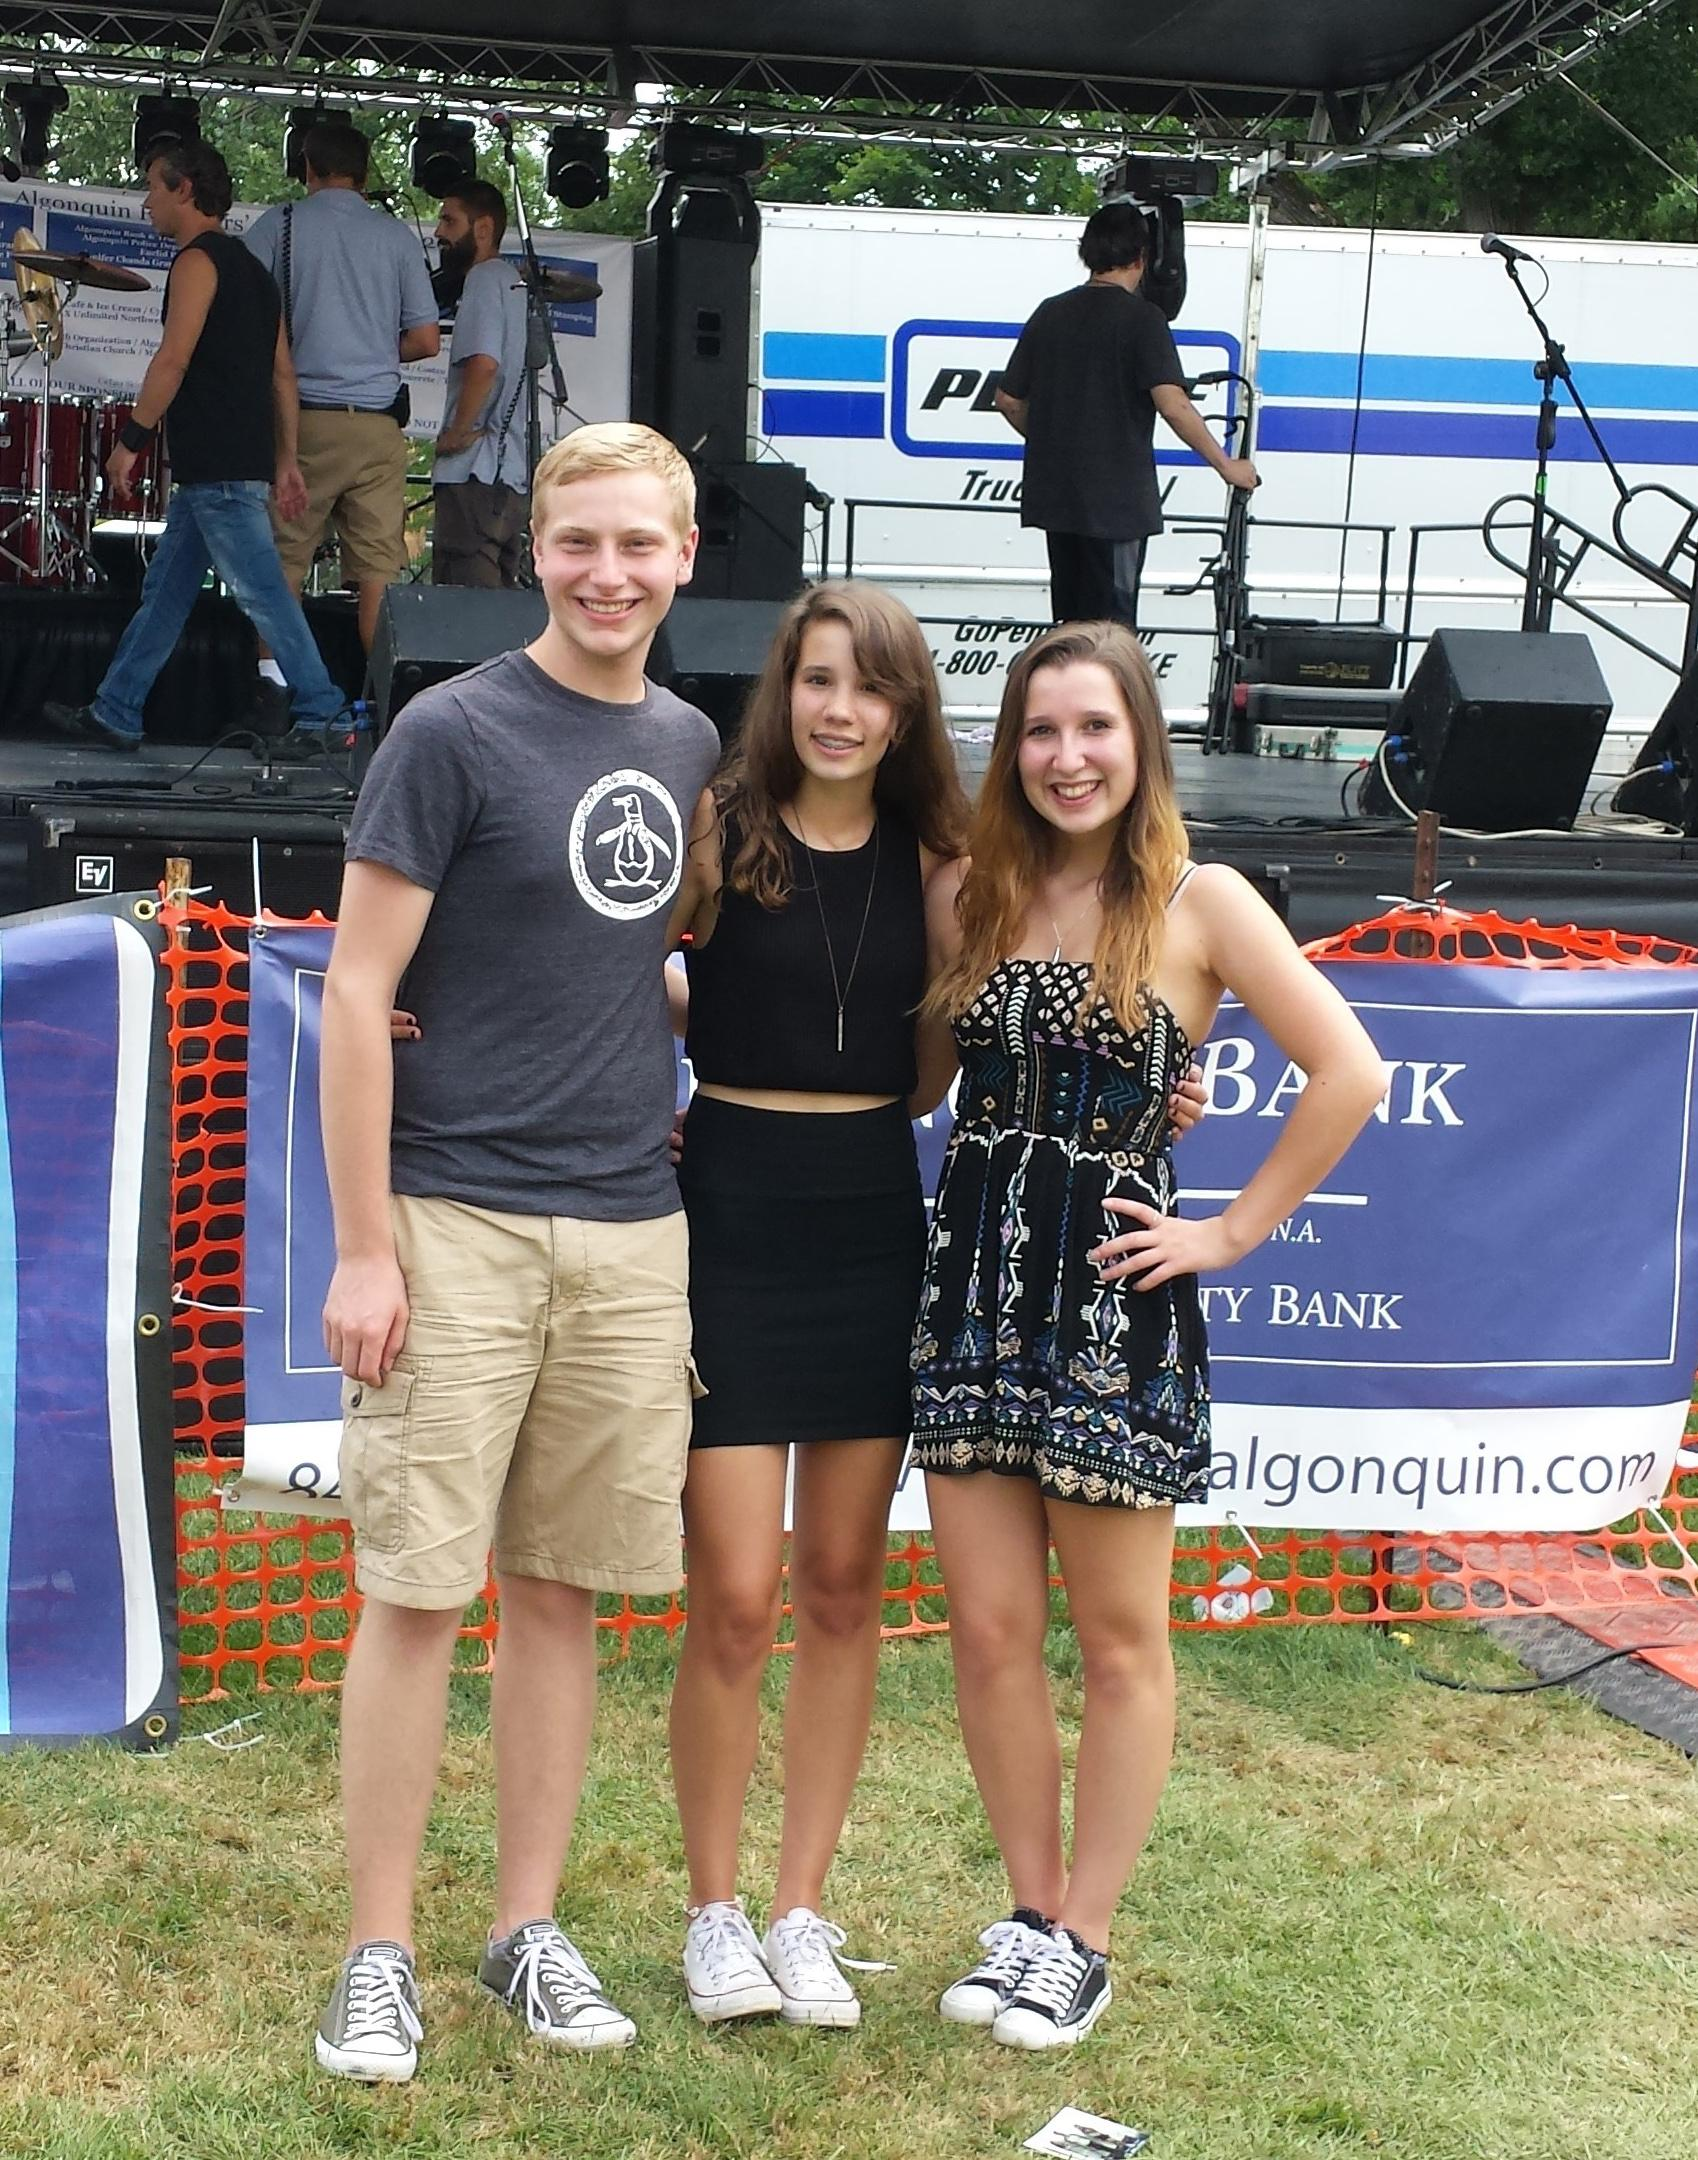 Music group comprised of Willowbrook students wins two competitions